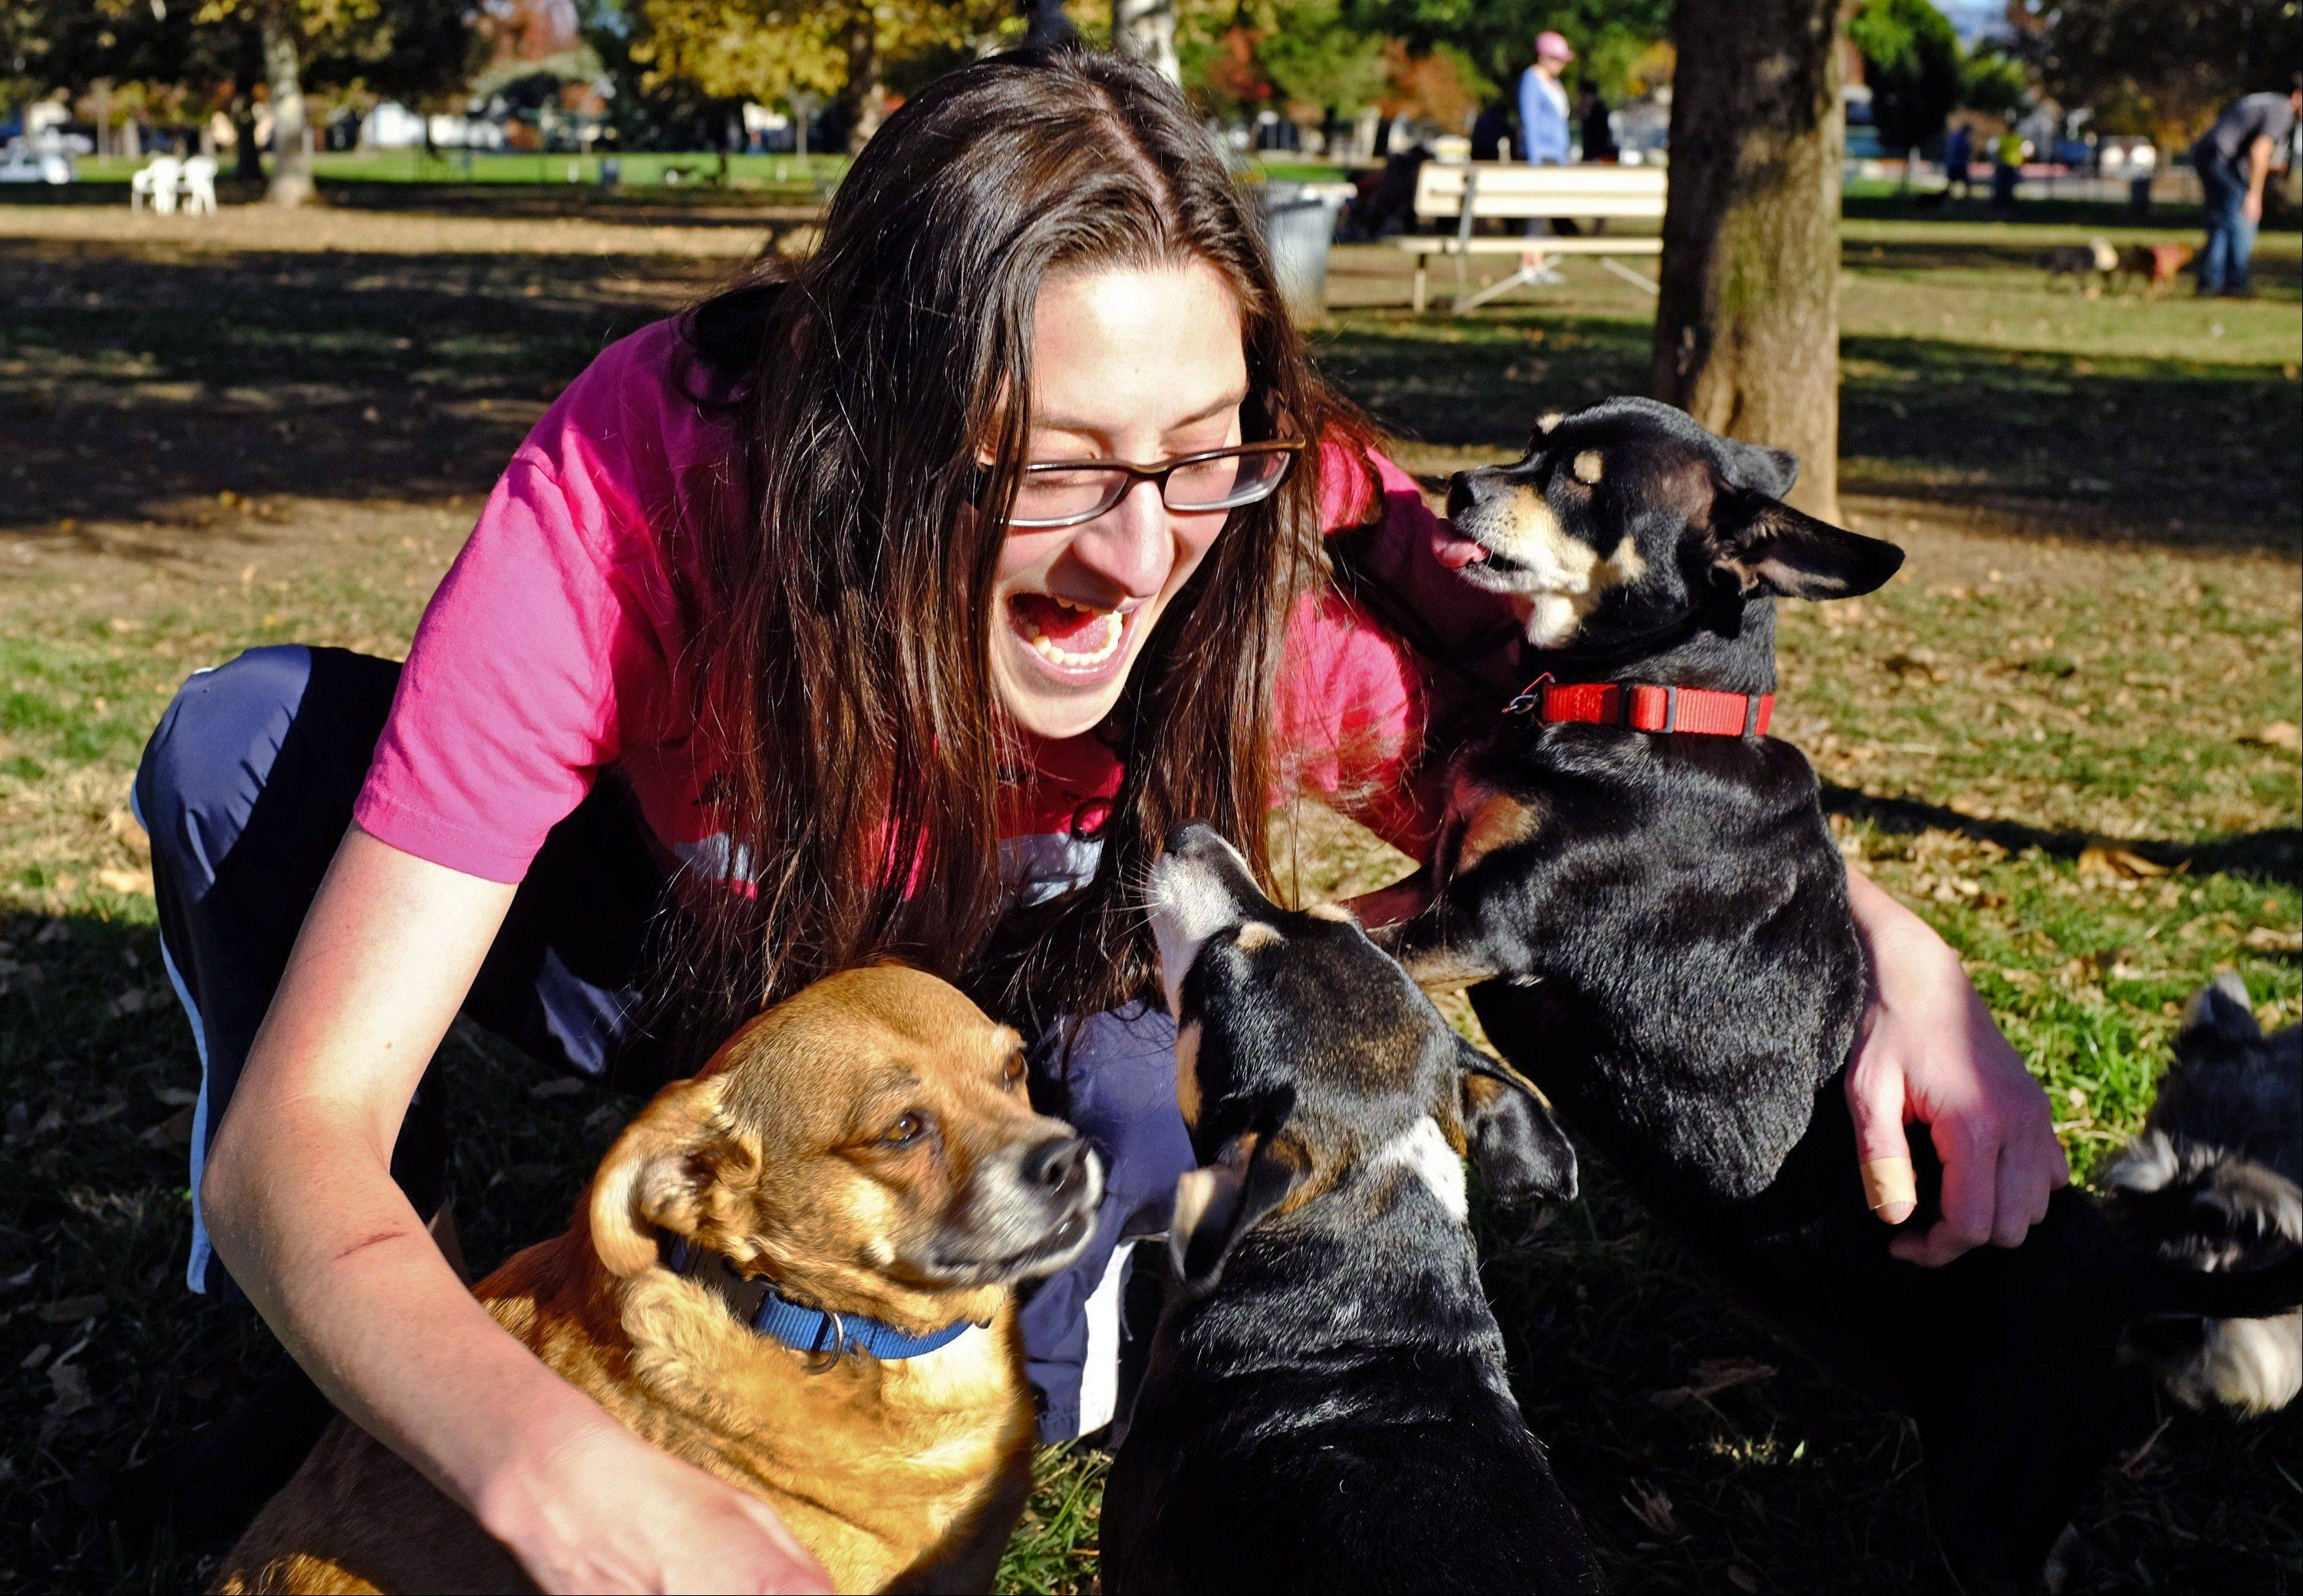 Cambria Hankin talks to her three dogs — Buddy, left, Riah and Stitch — at the Sepulveda Basin Dog Park in Los Angeles. Dr. Gary Weitzman, president of the San Diego Humane Society, has worked with tens of thousands of stray dogs over the last quarter century and says there is no question that pets and people communicate.